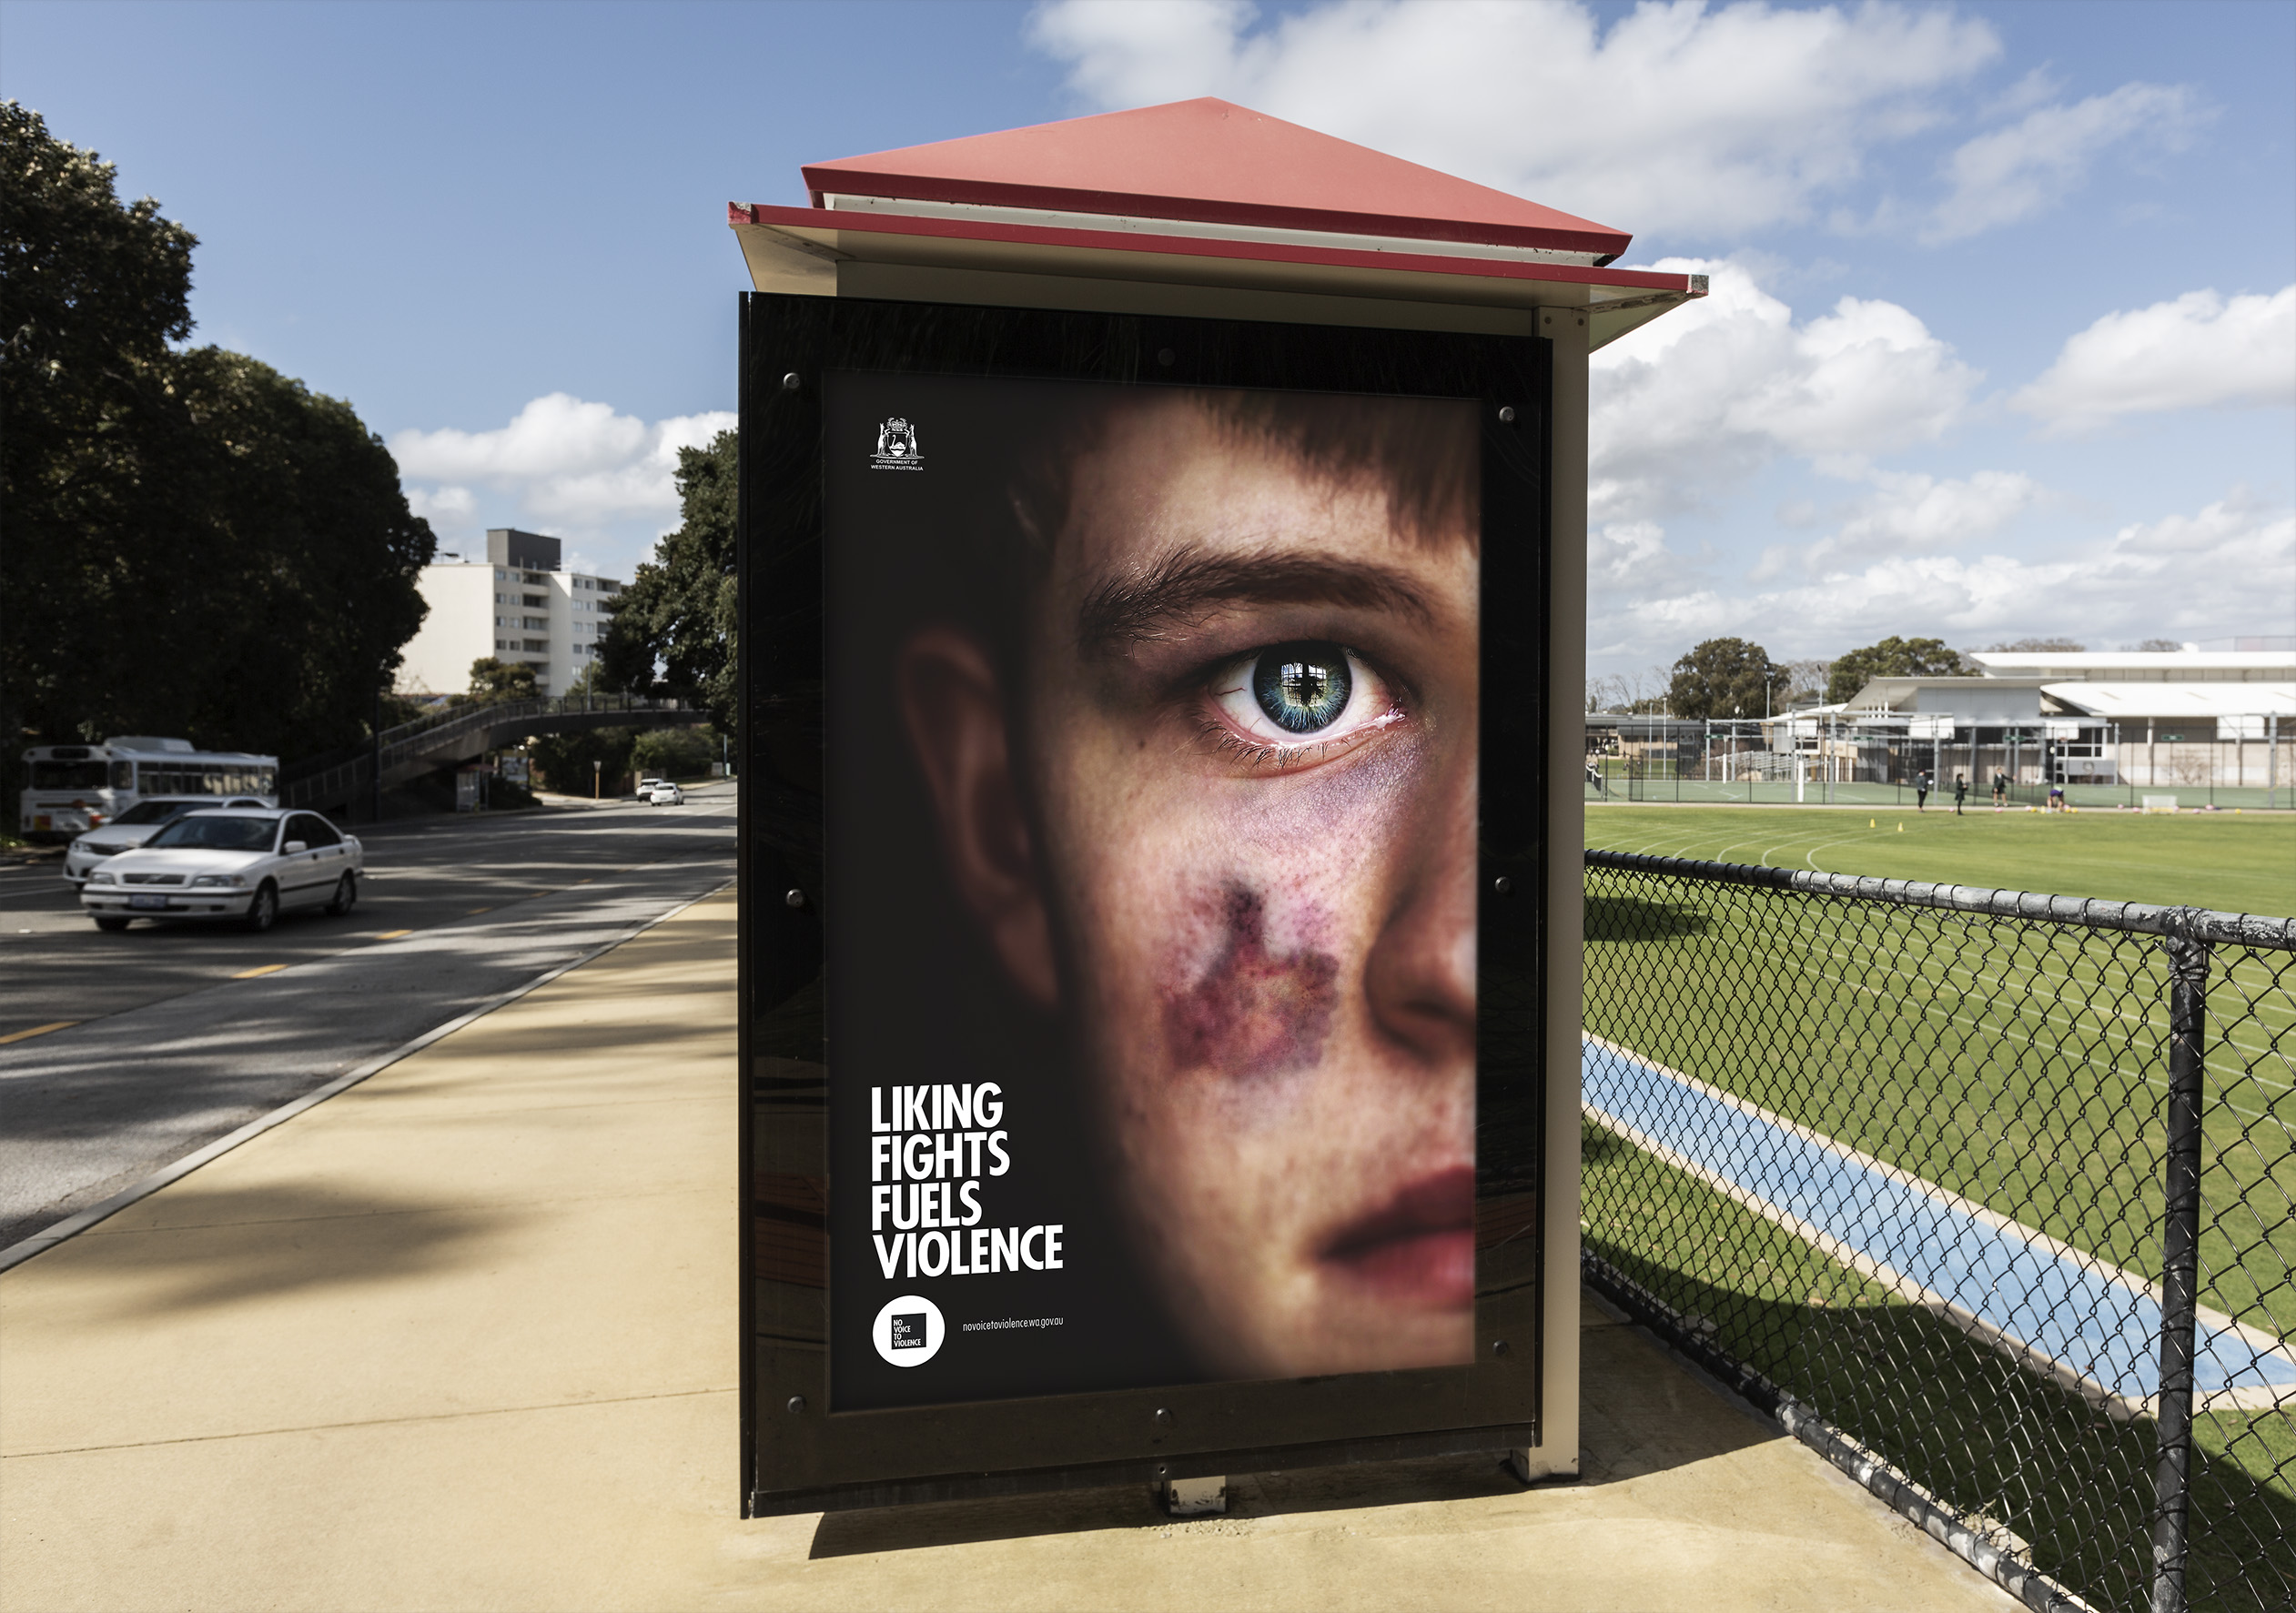 WA Department of Education tackles school violence in new campaign via Gatecrasher